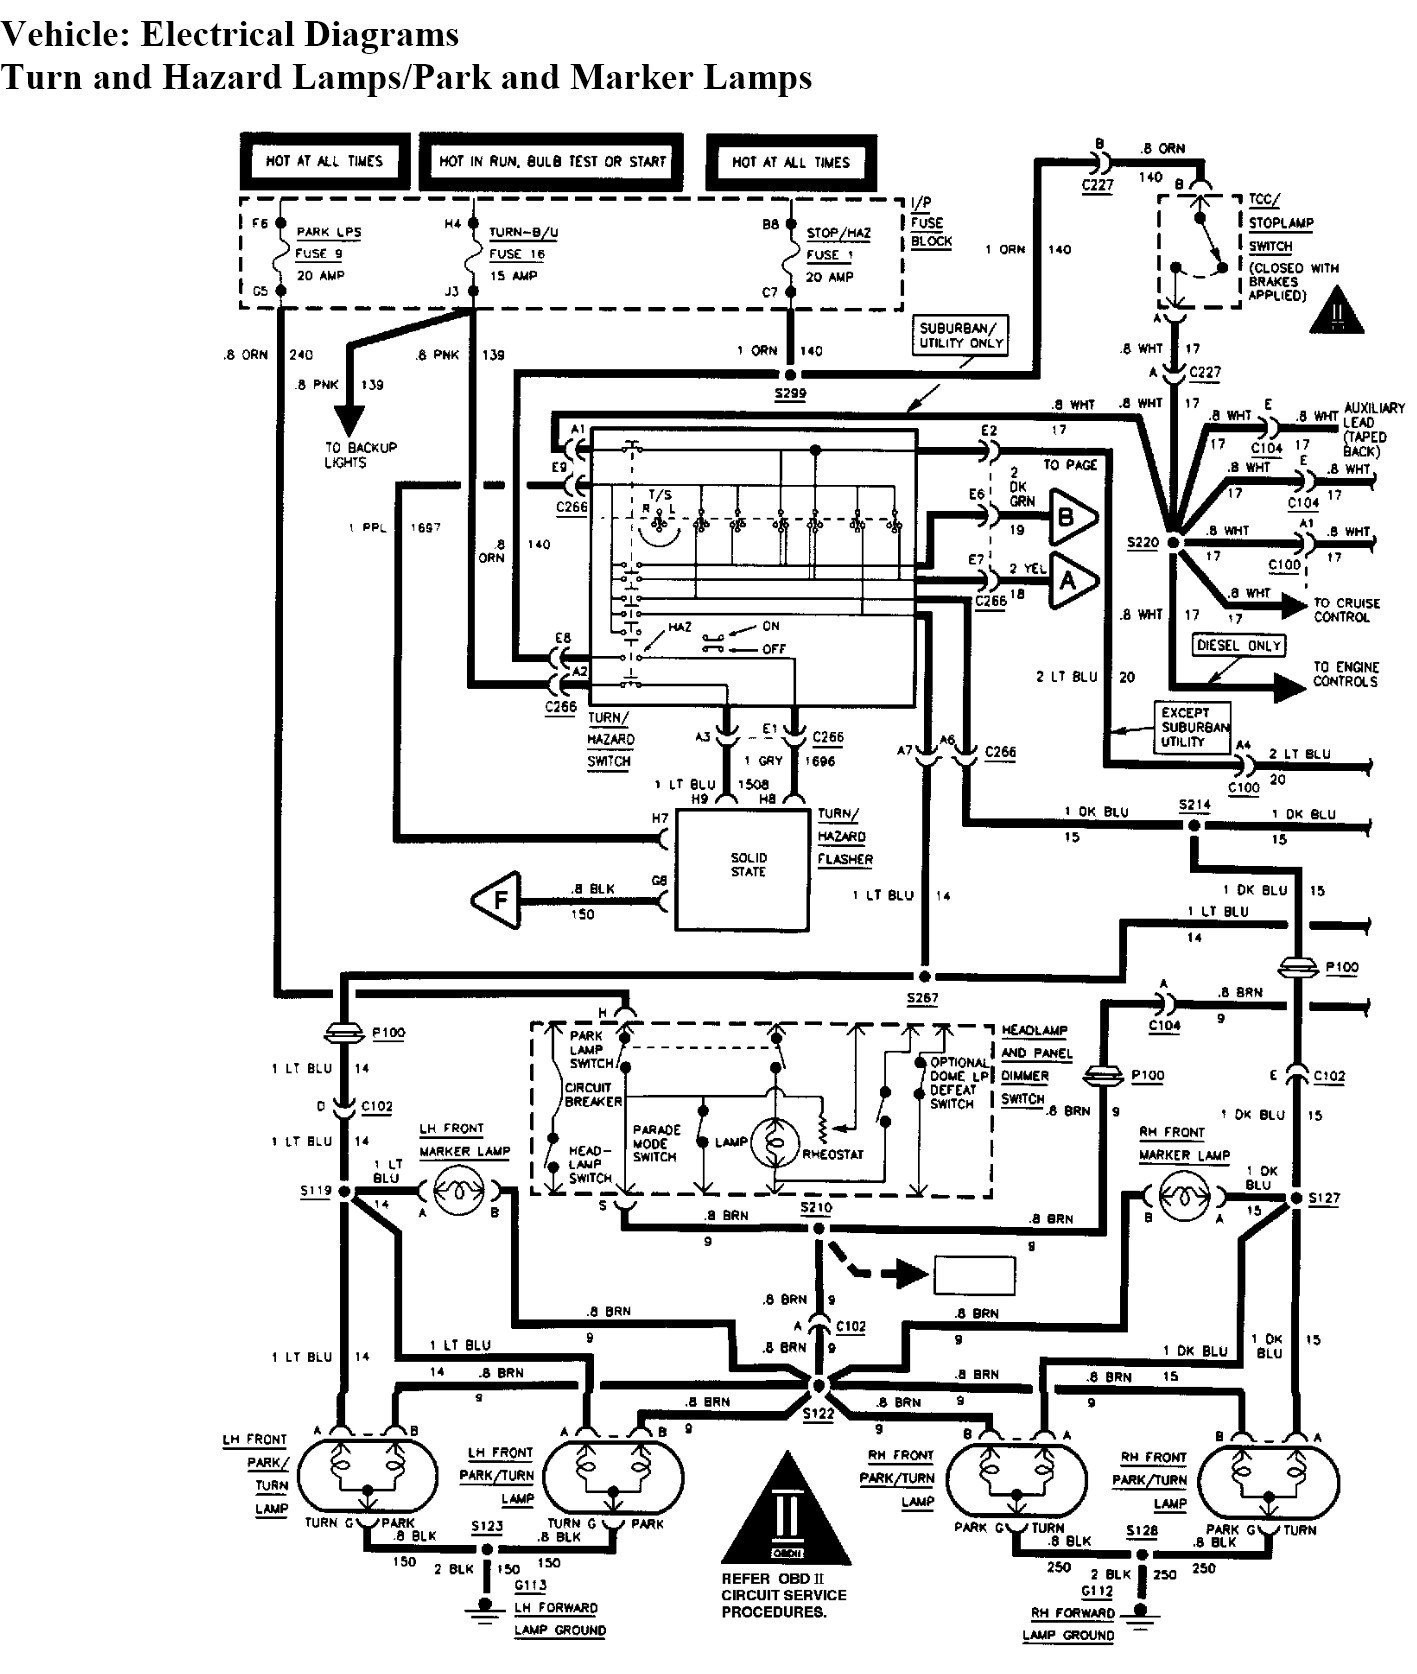 Dodge Ram Van Wiring Diagram